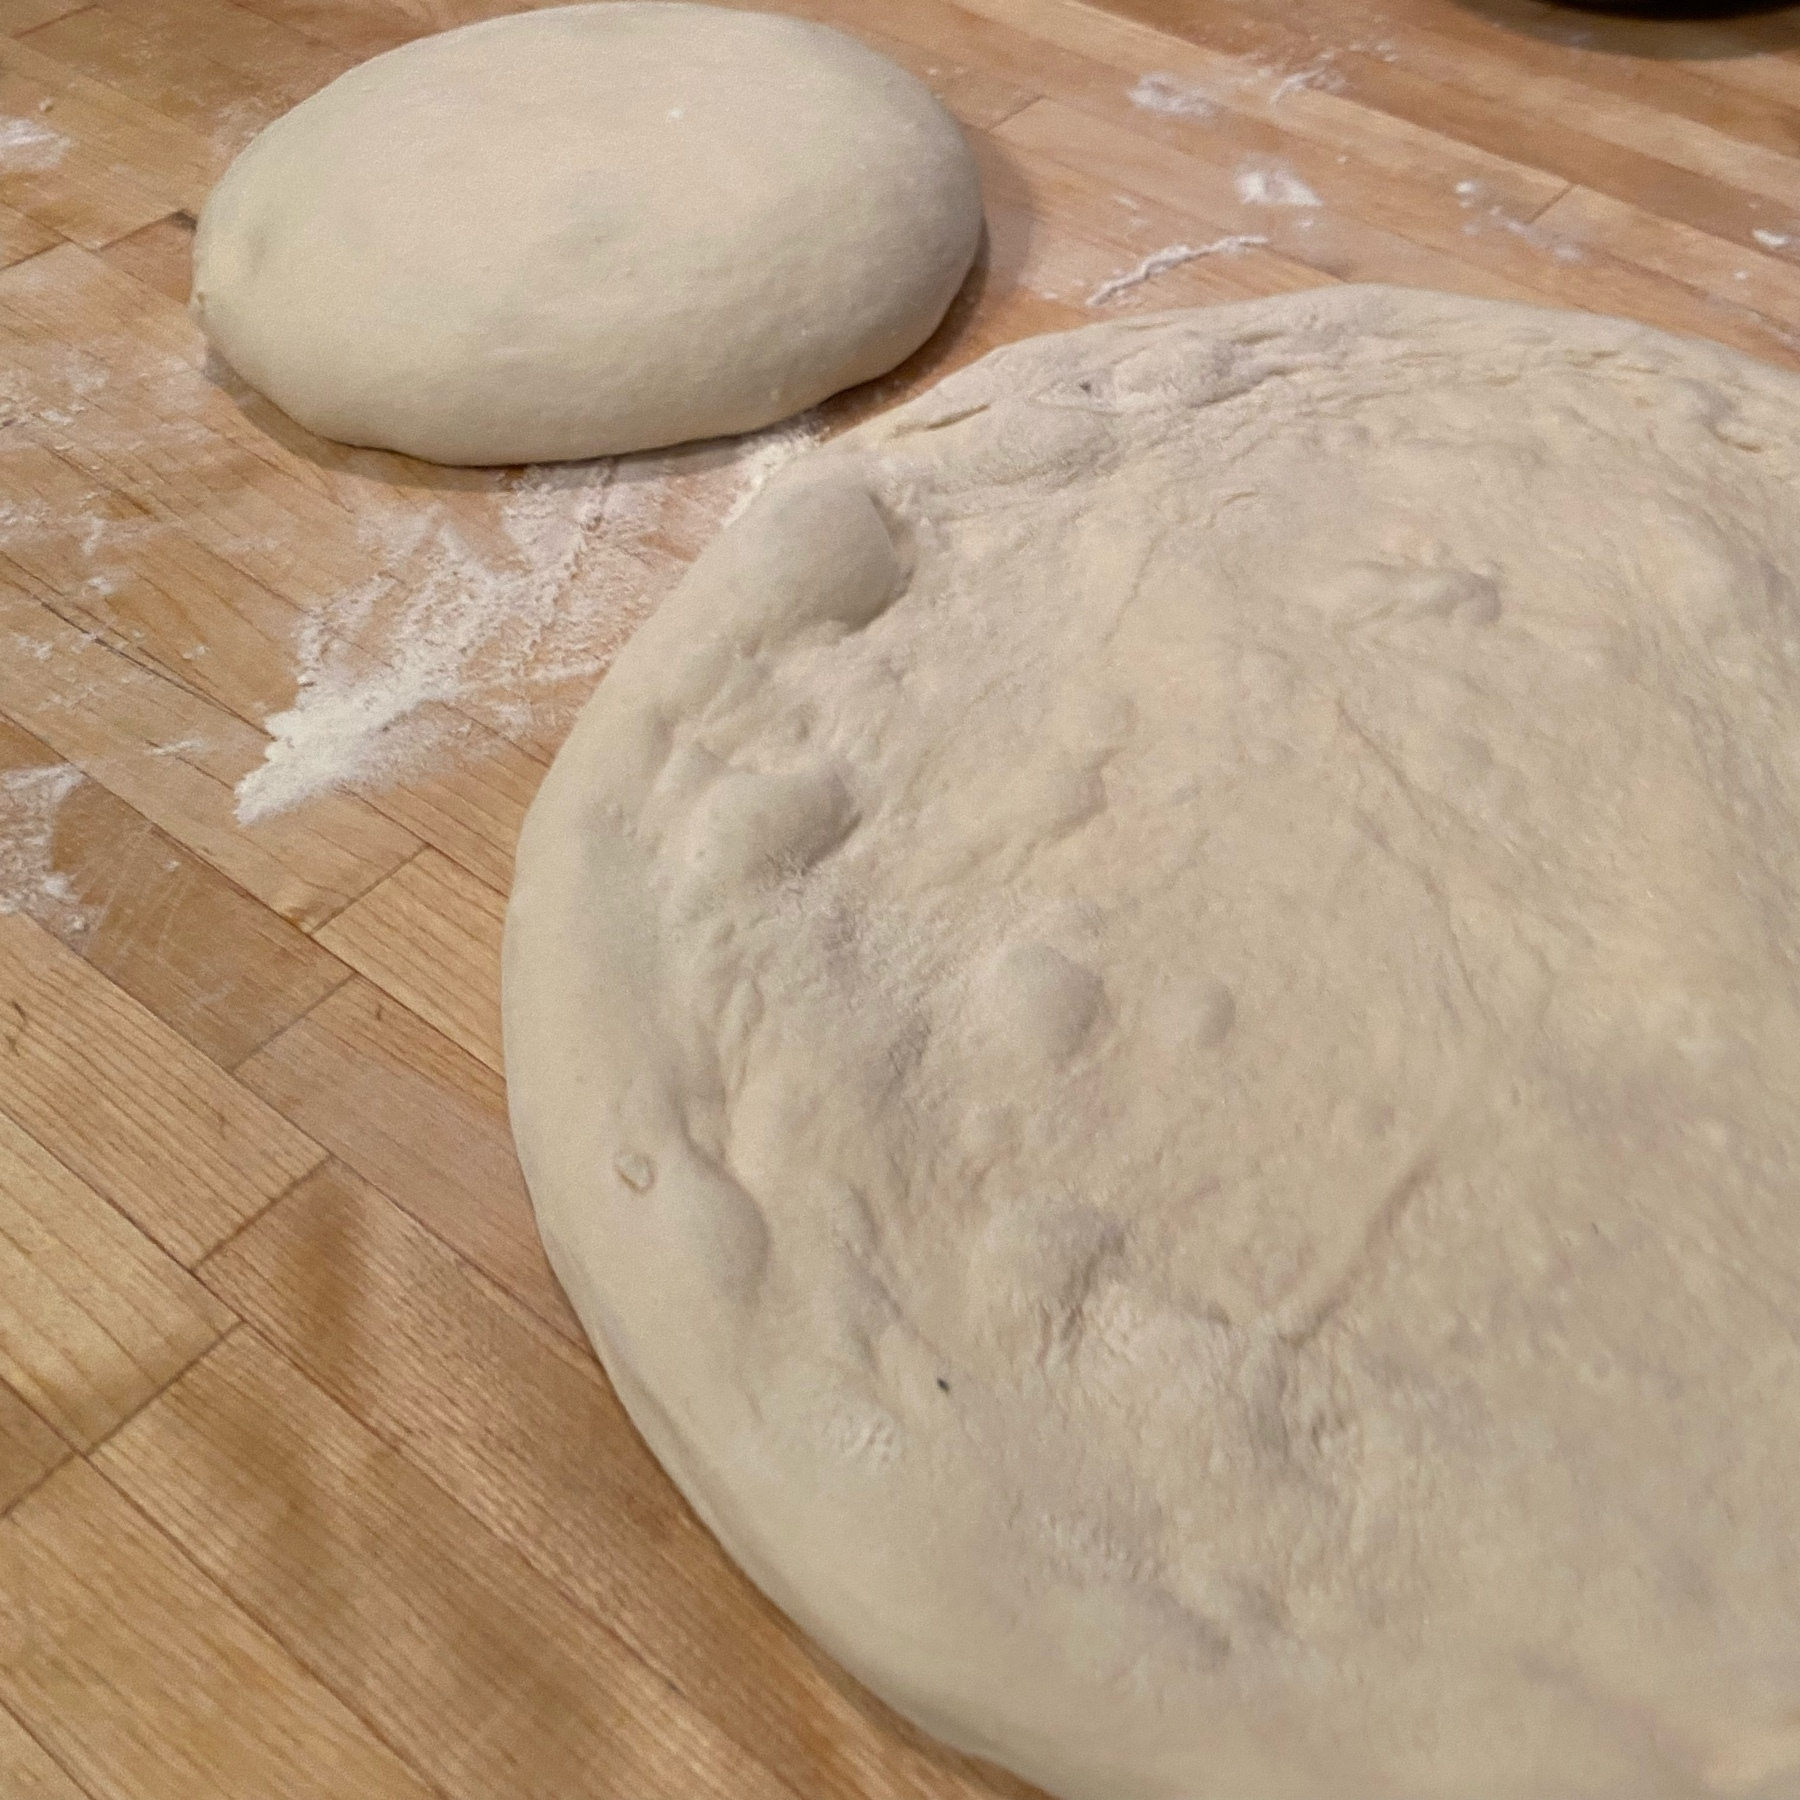 two dough balls, one stretched into a pizza shape and one in a round mound